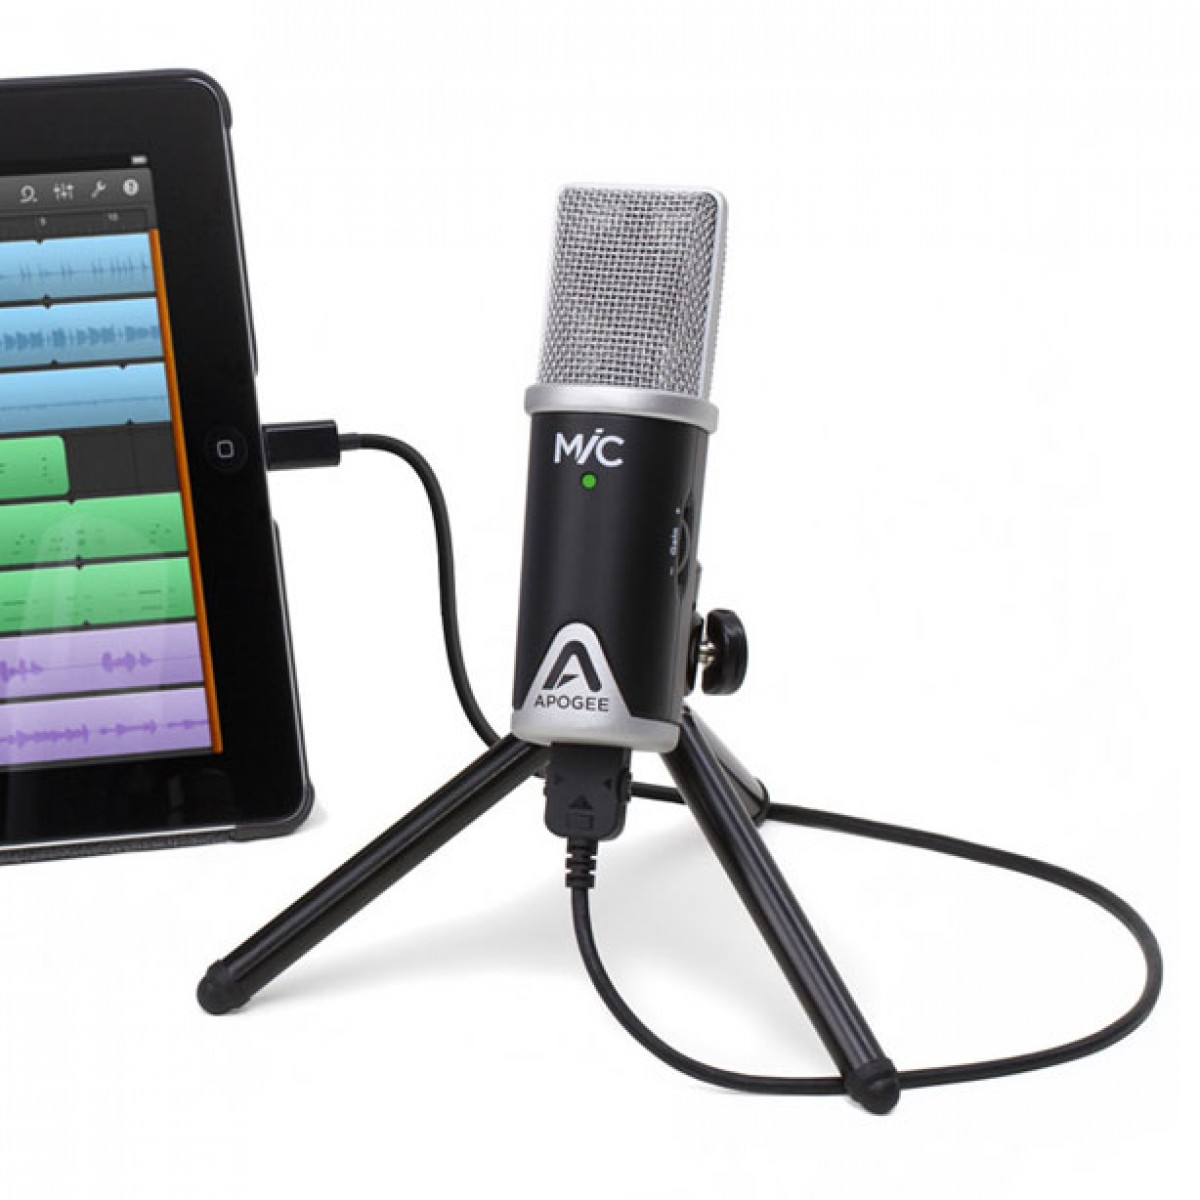 iPhone ve iPad Mikrofonu: Apogee Mic 96K İnceleme